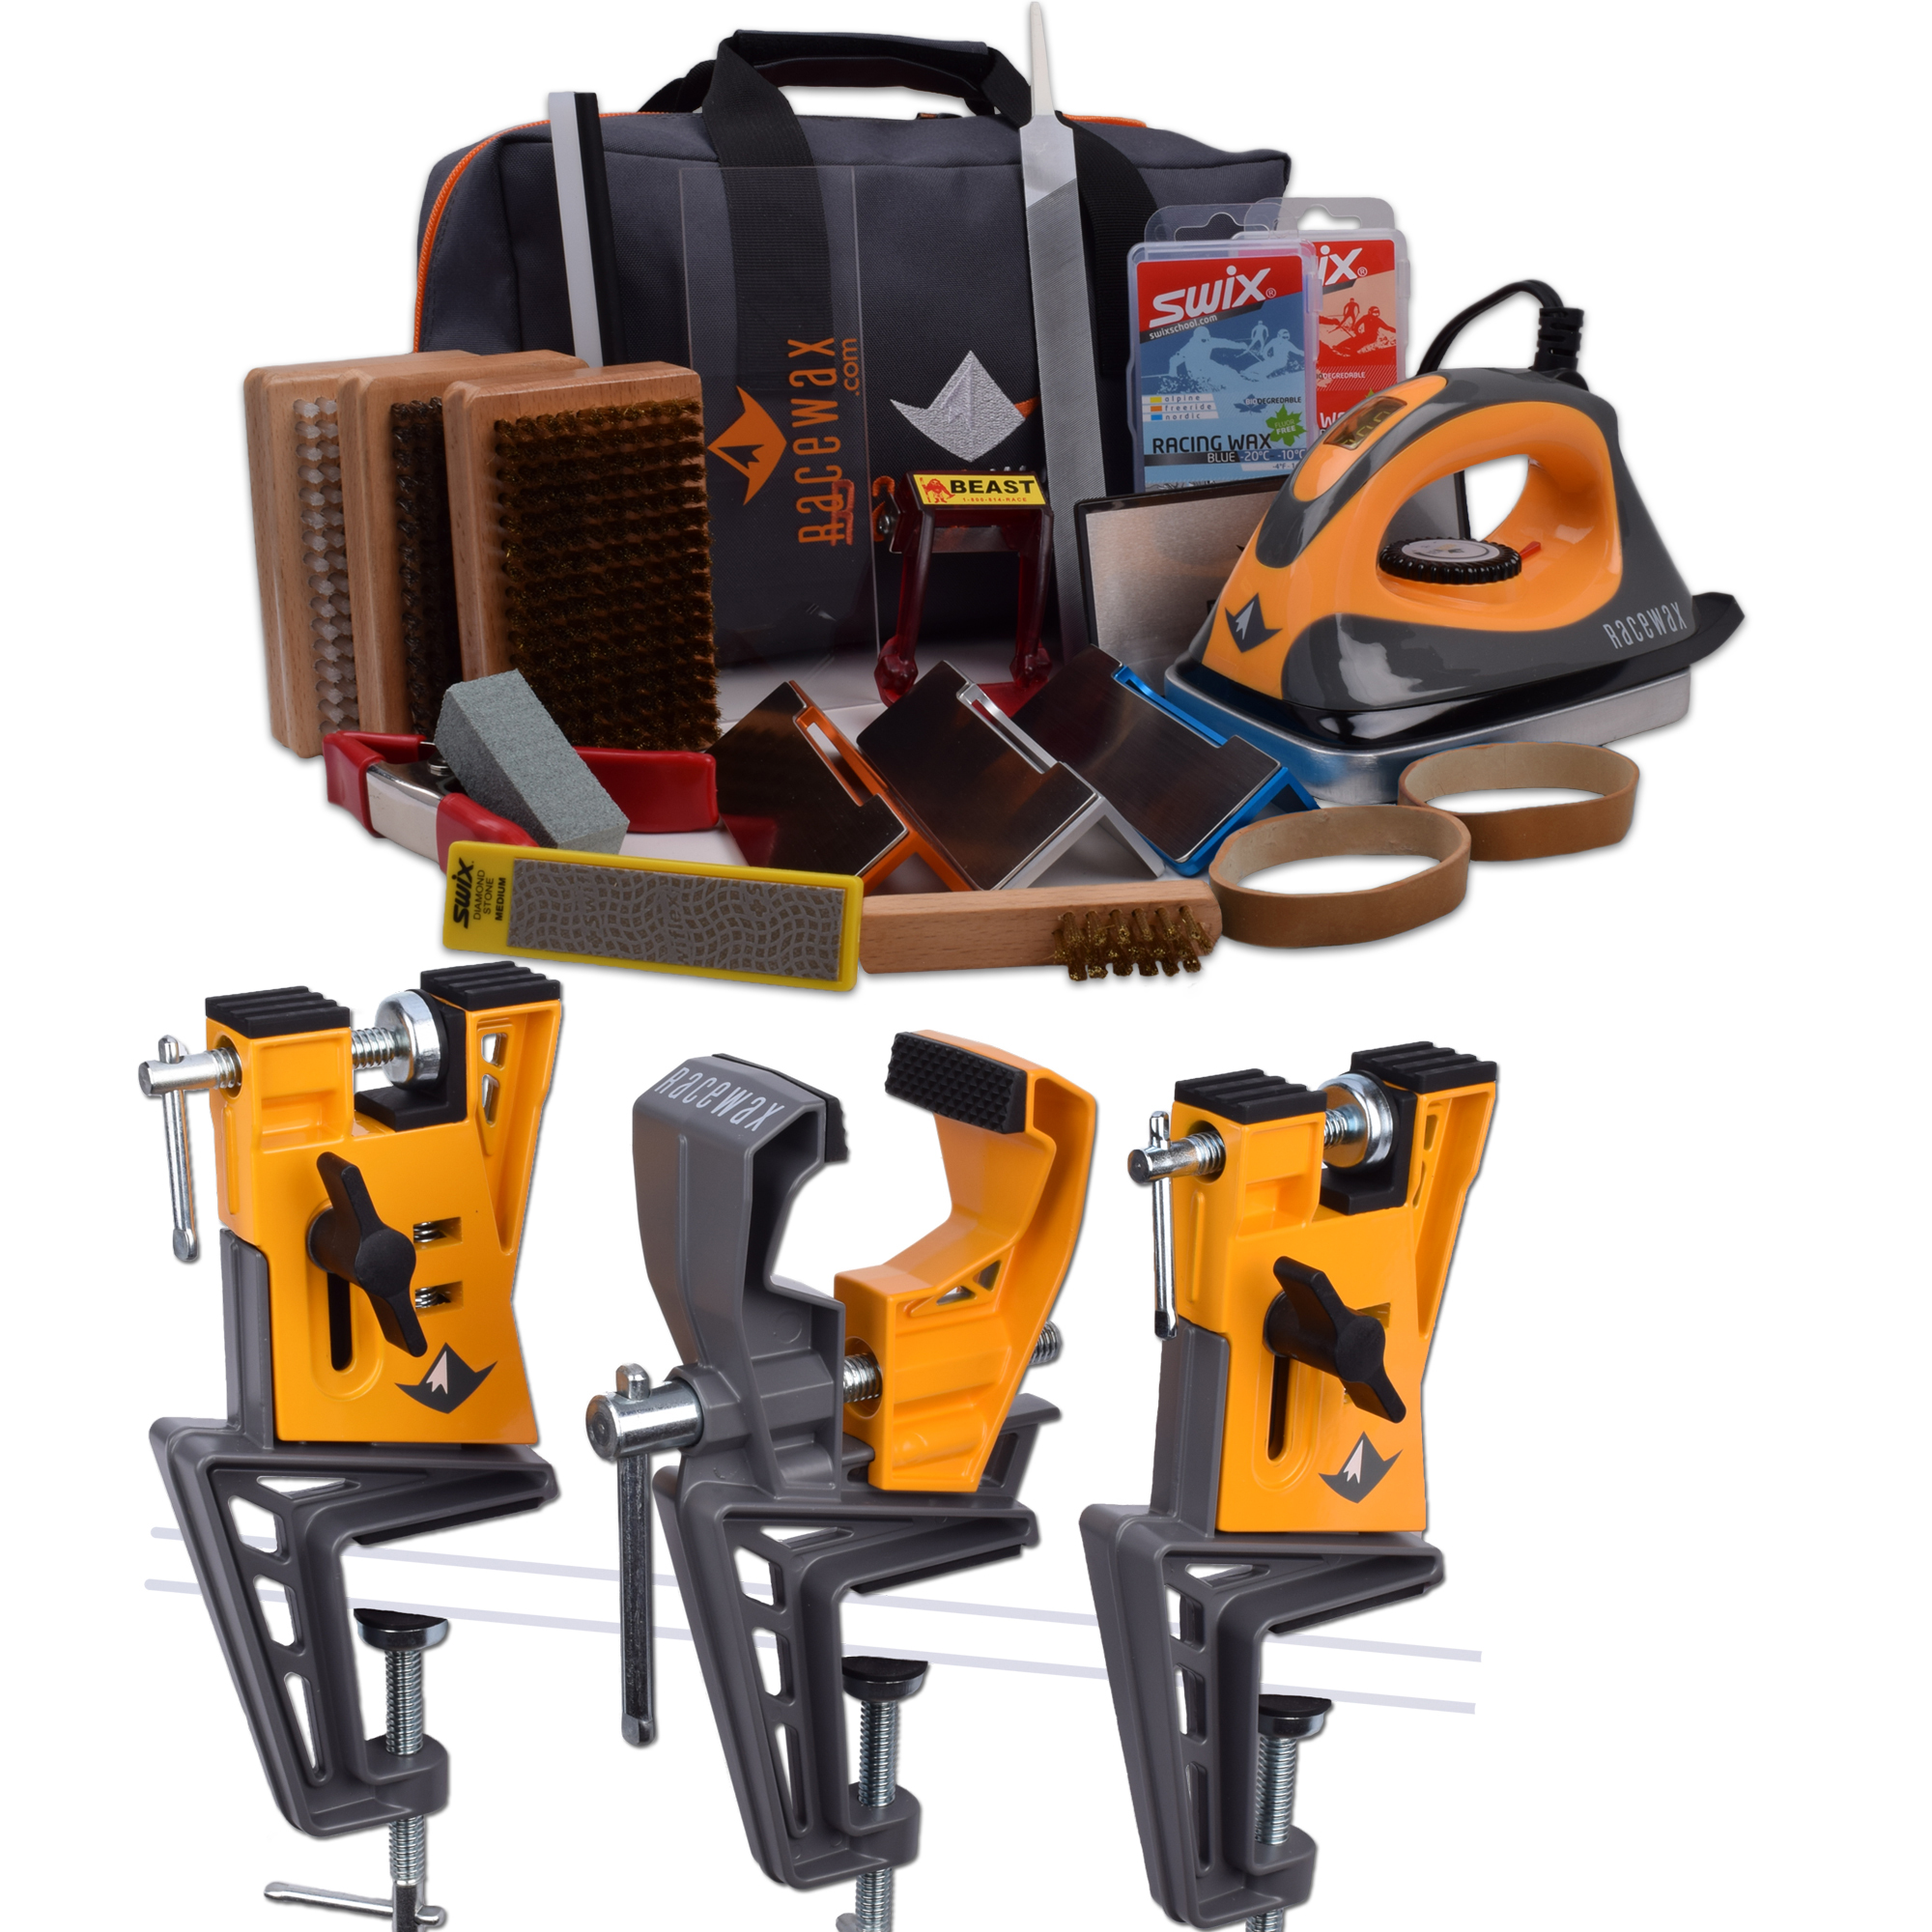 Ski Tuning Kits with Irons & More